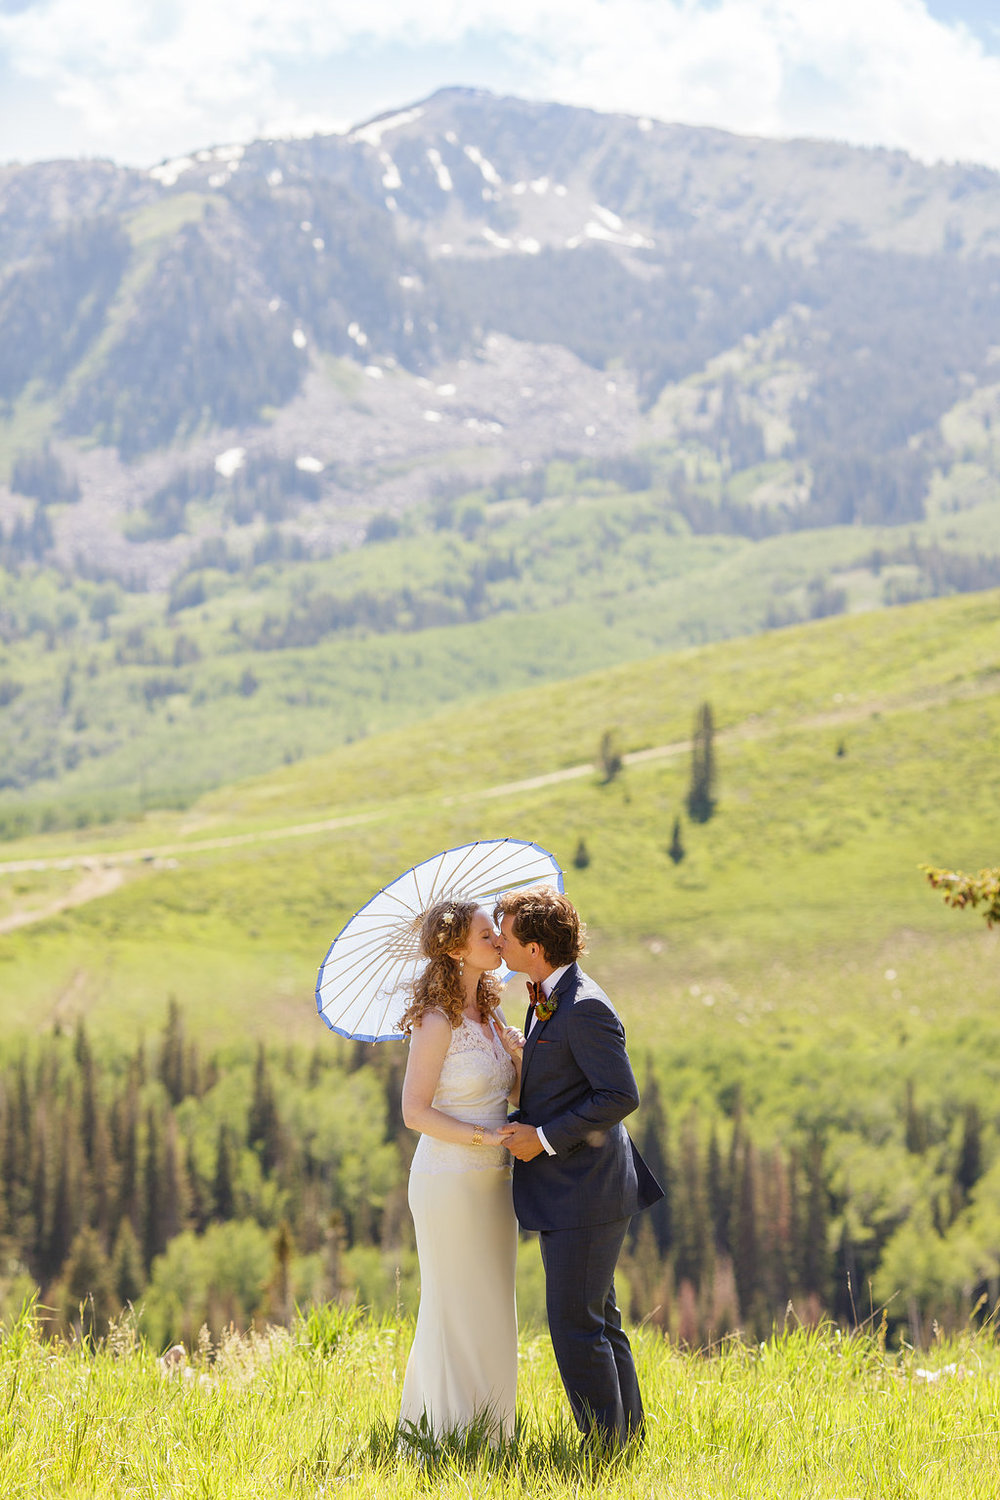 cushings-cabin-wedding-deer-valley-28.jpg